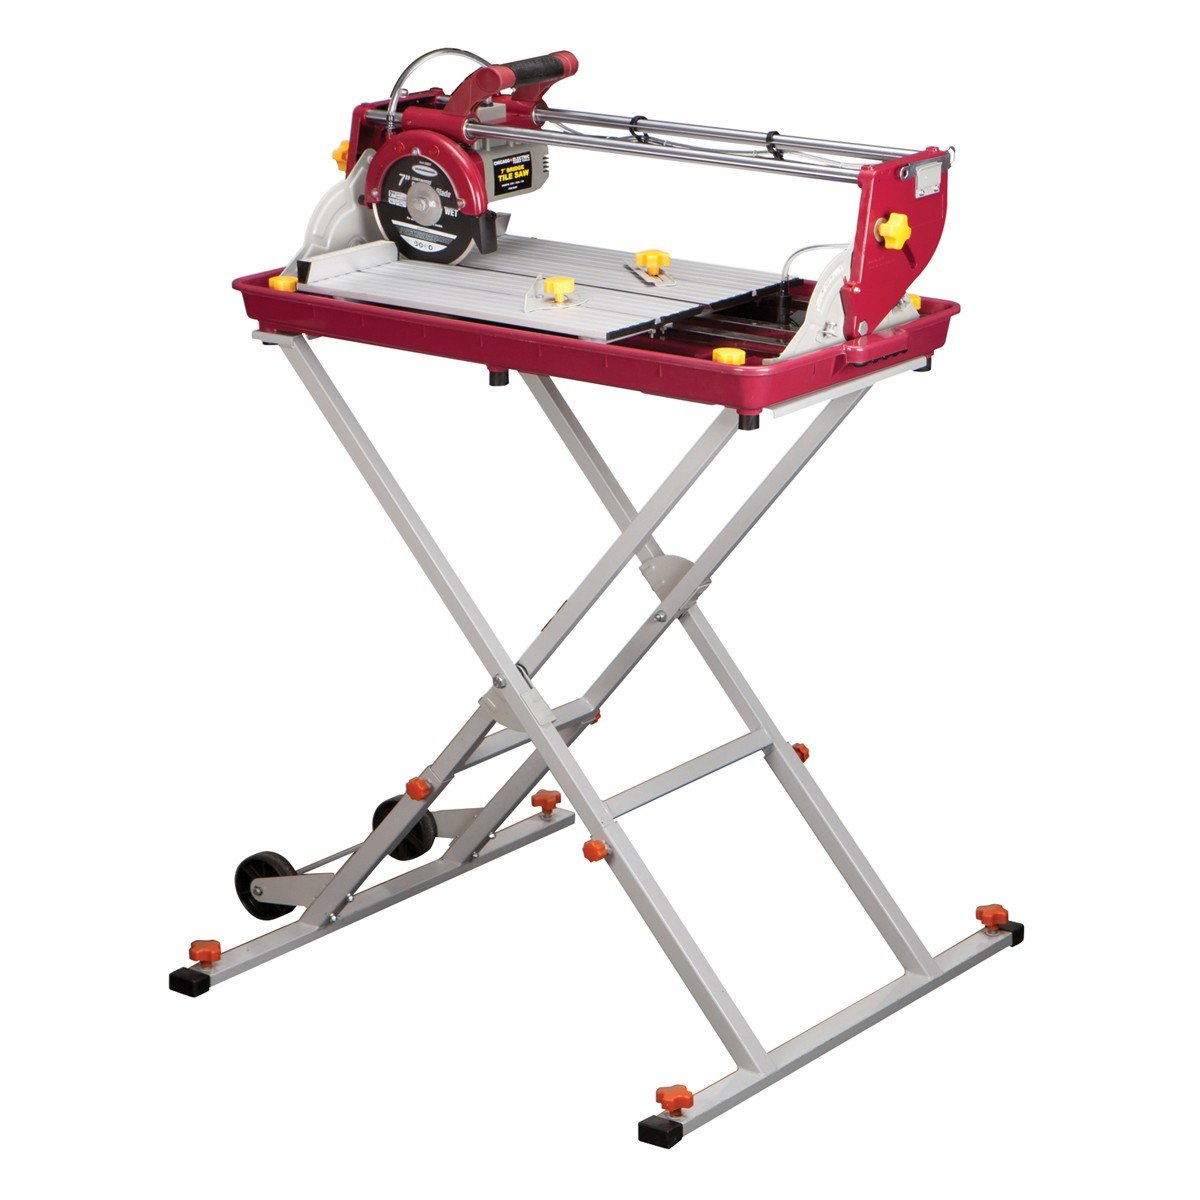 7 inch Bridge Tile Saw by Chicago Electric